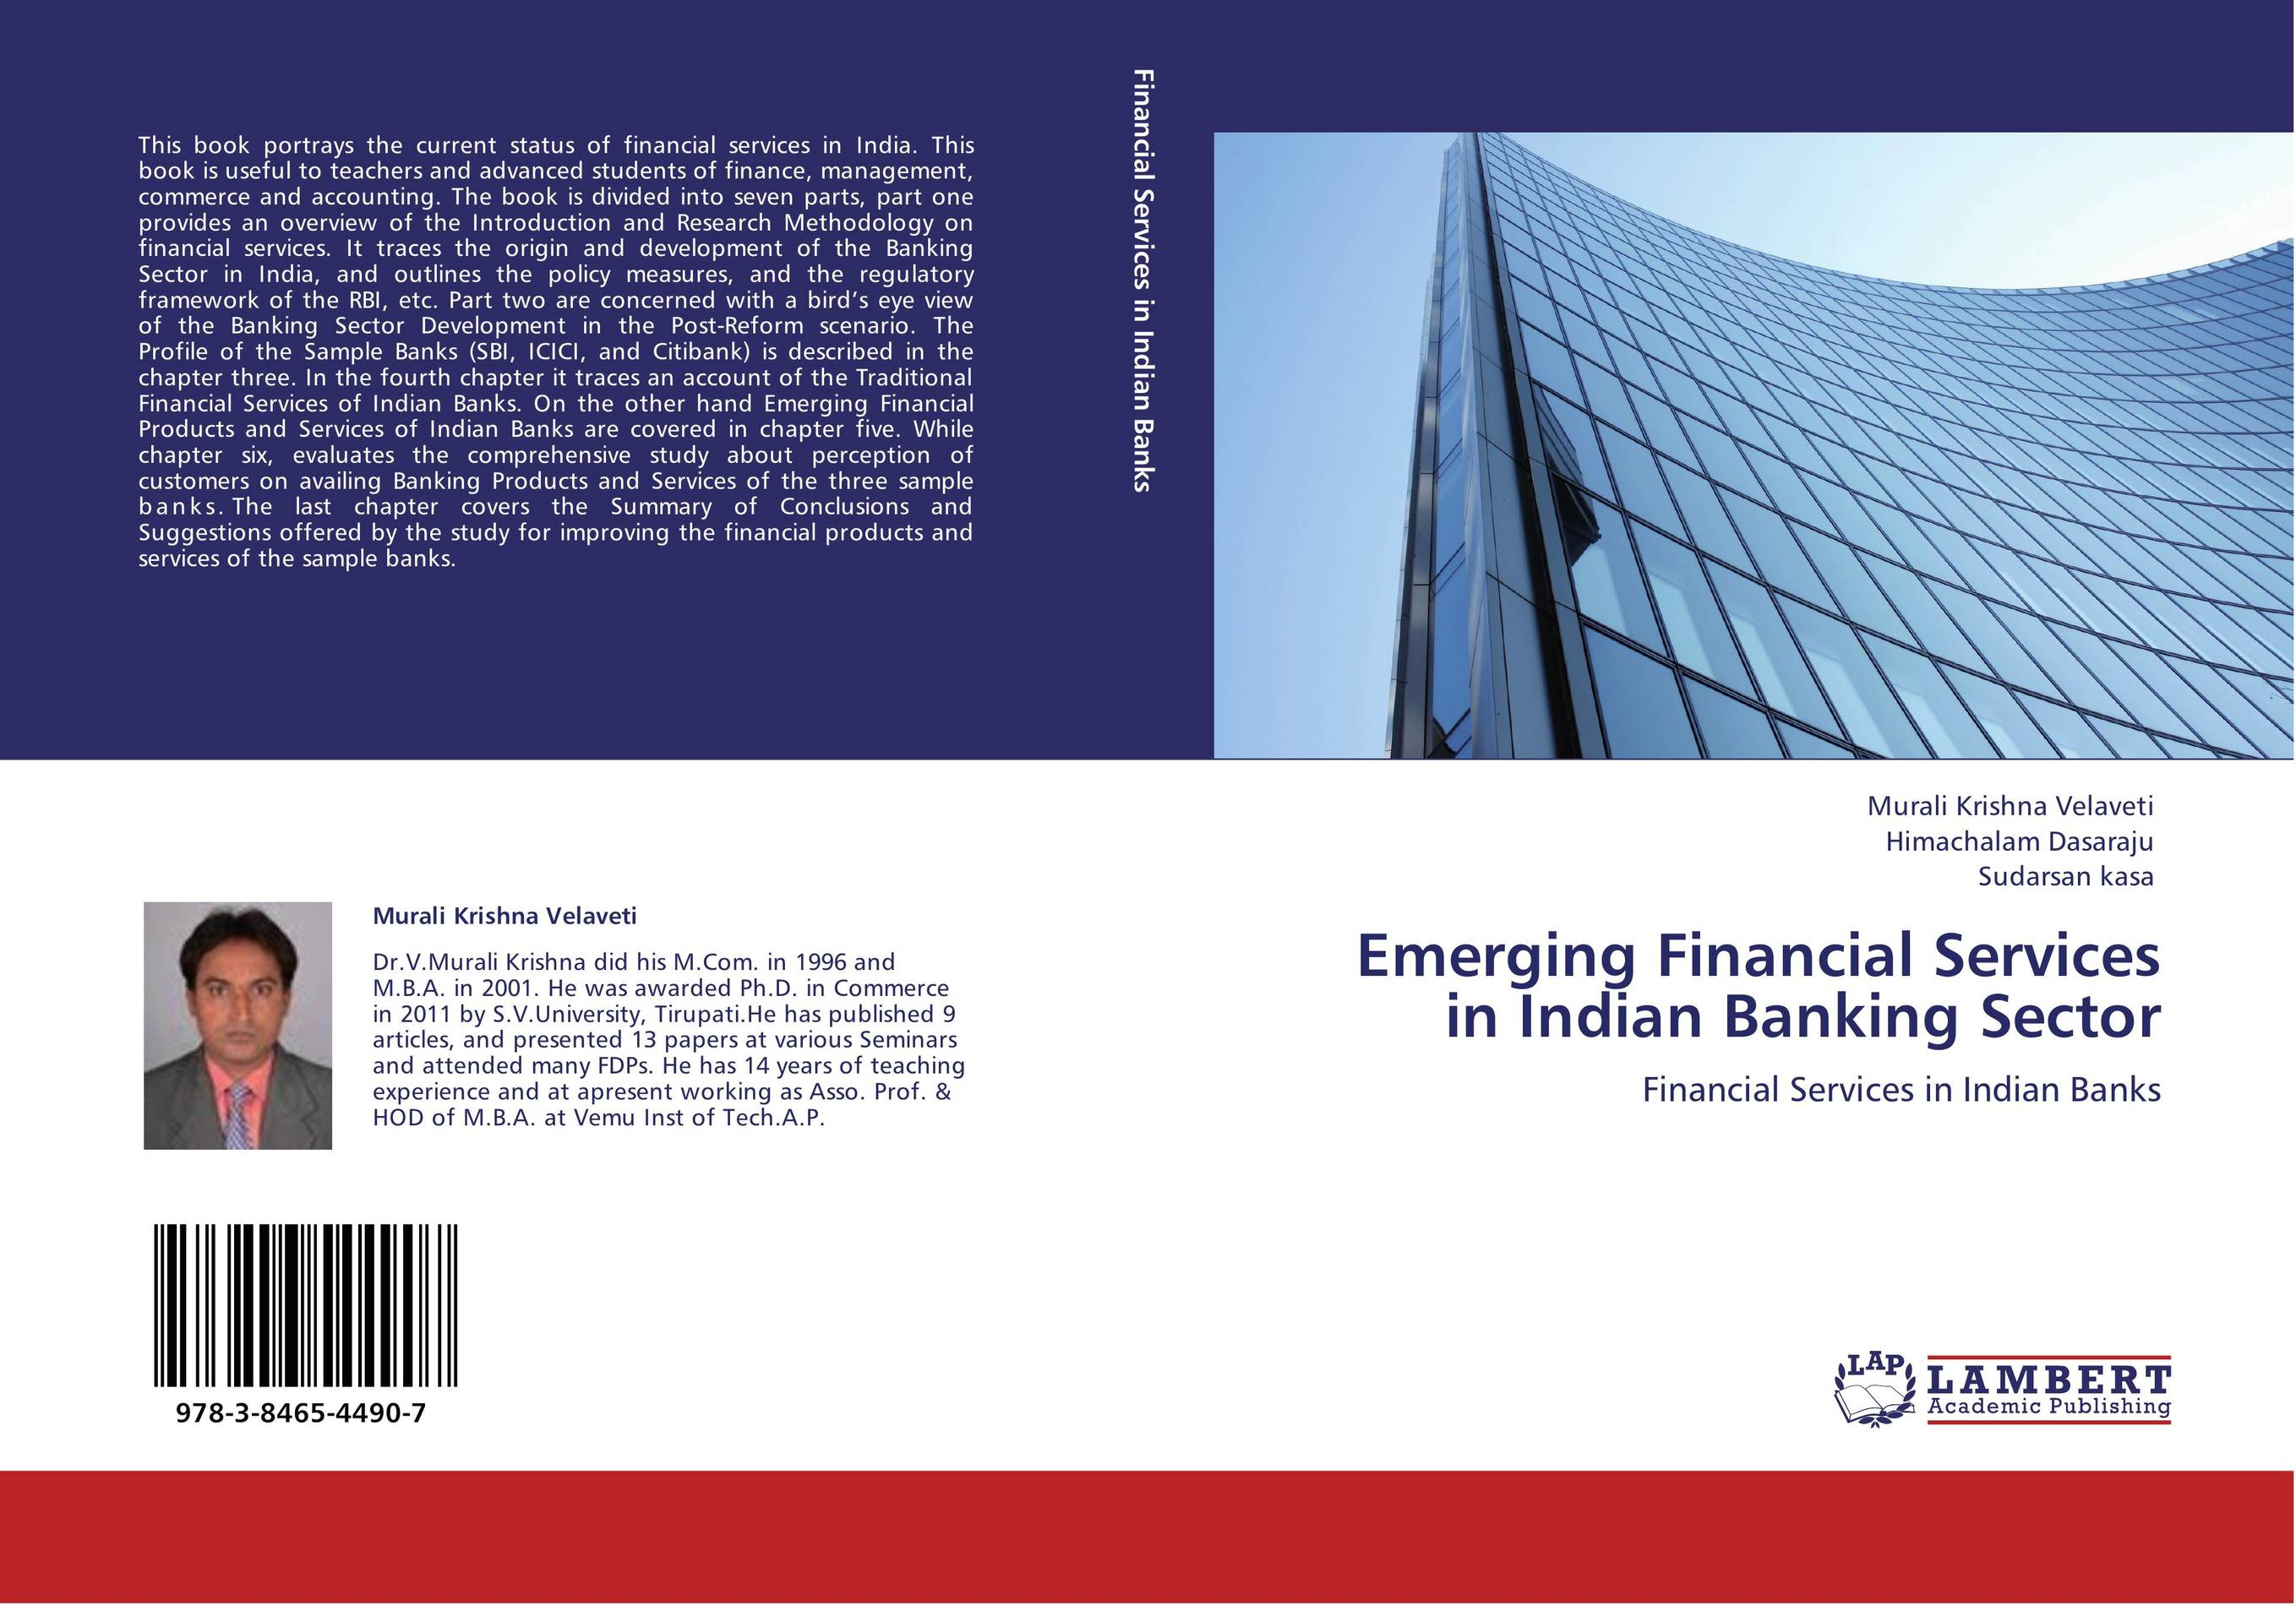 thesis on npa management in india Das [4], management of non performing assets in indian public sector banks with special mahajan [9], 'trends of npas in indian banking sector', the researcher focused compare the status of indian so finally the study concluded that magnitude of india banking npas are high compared to.